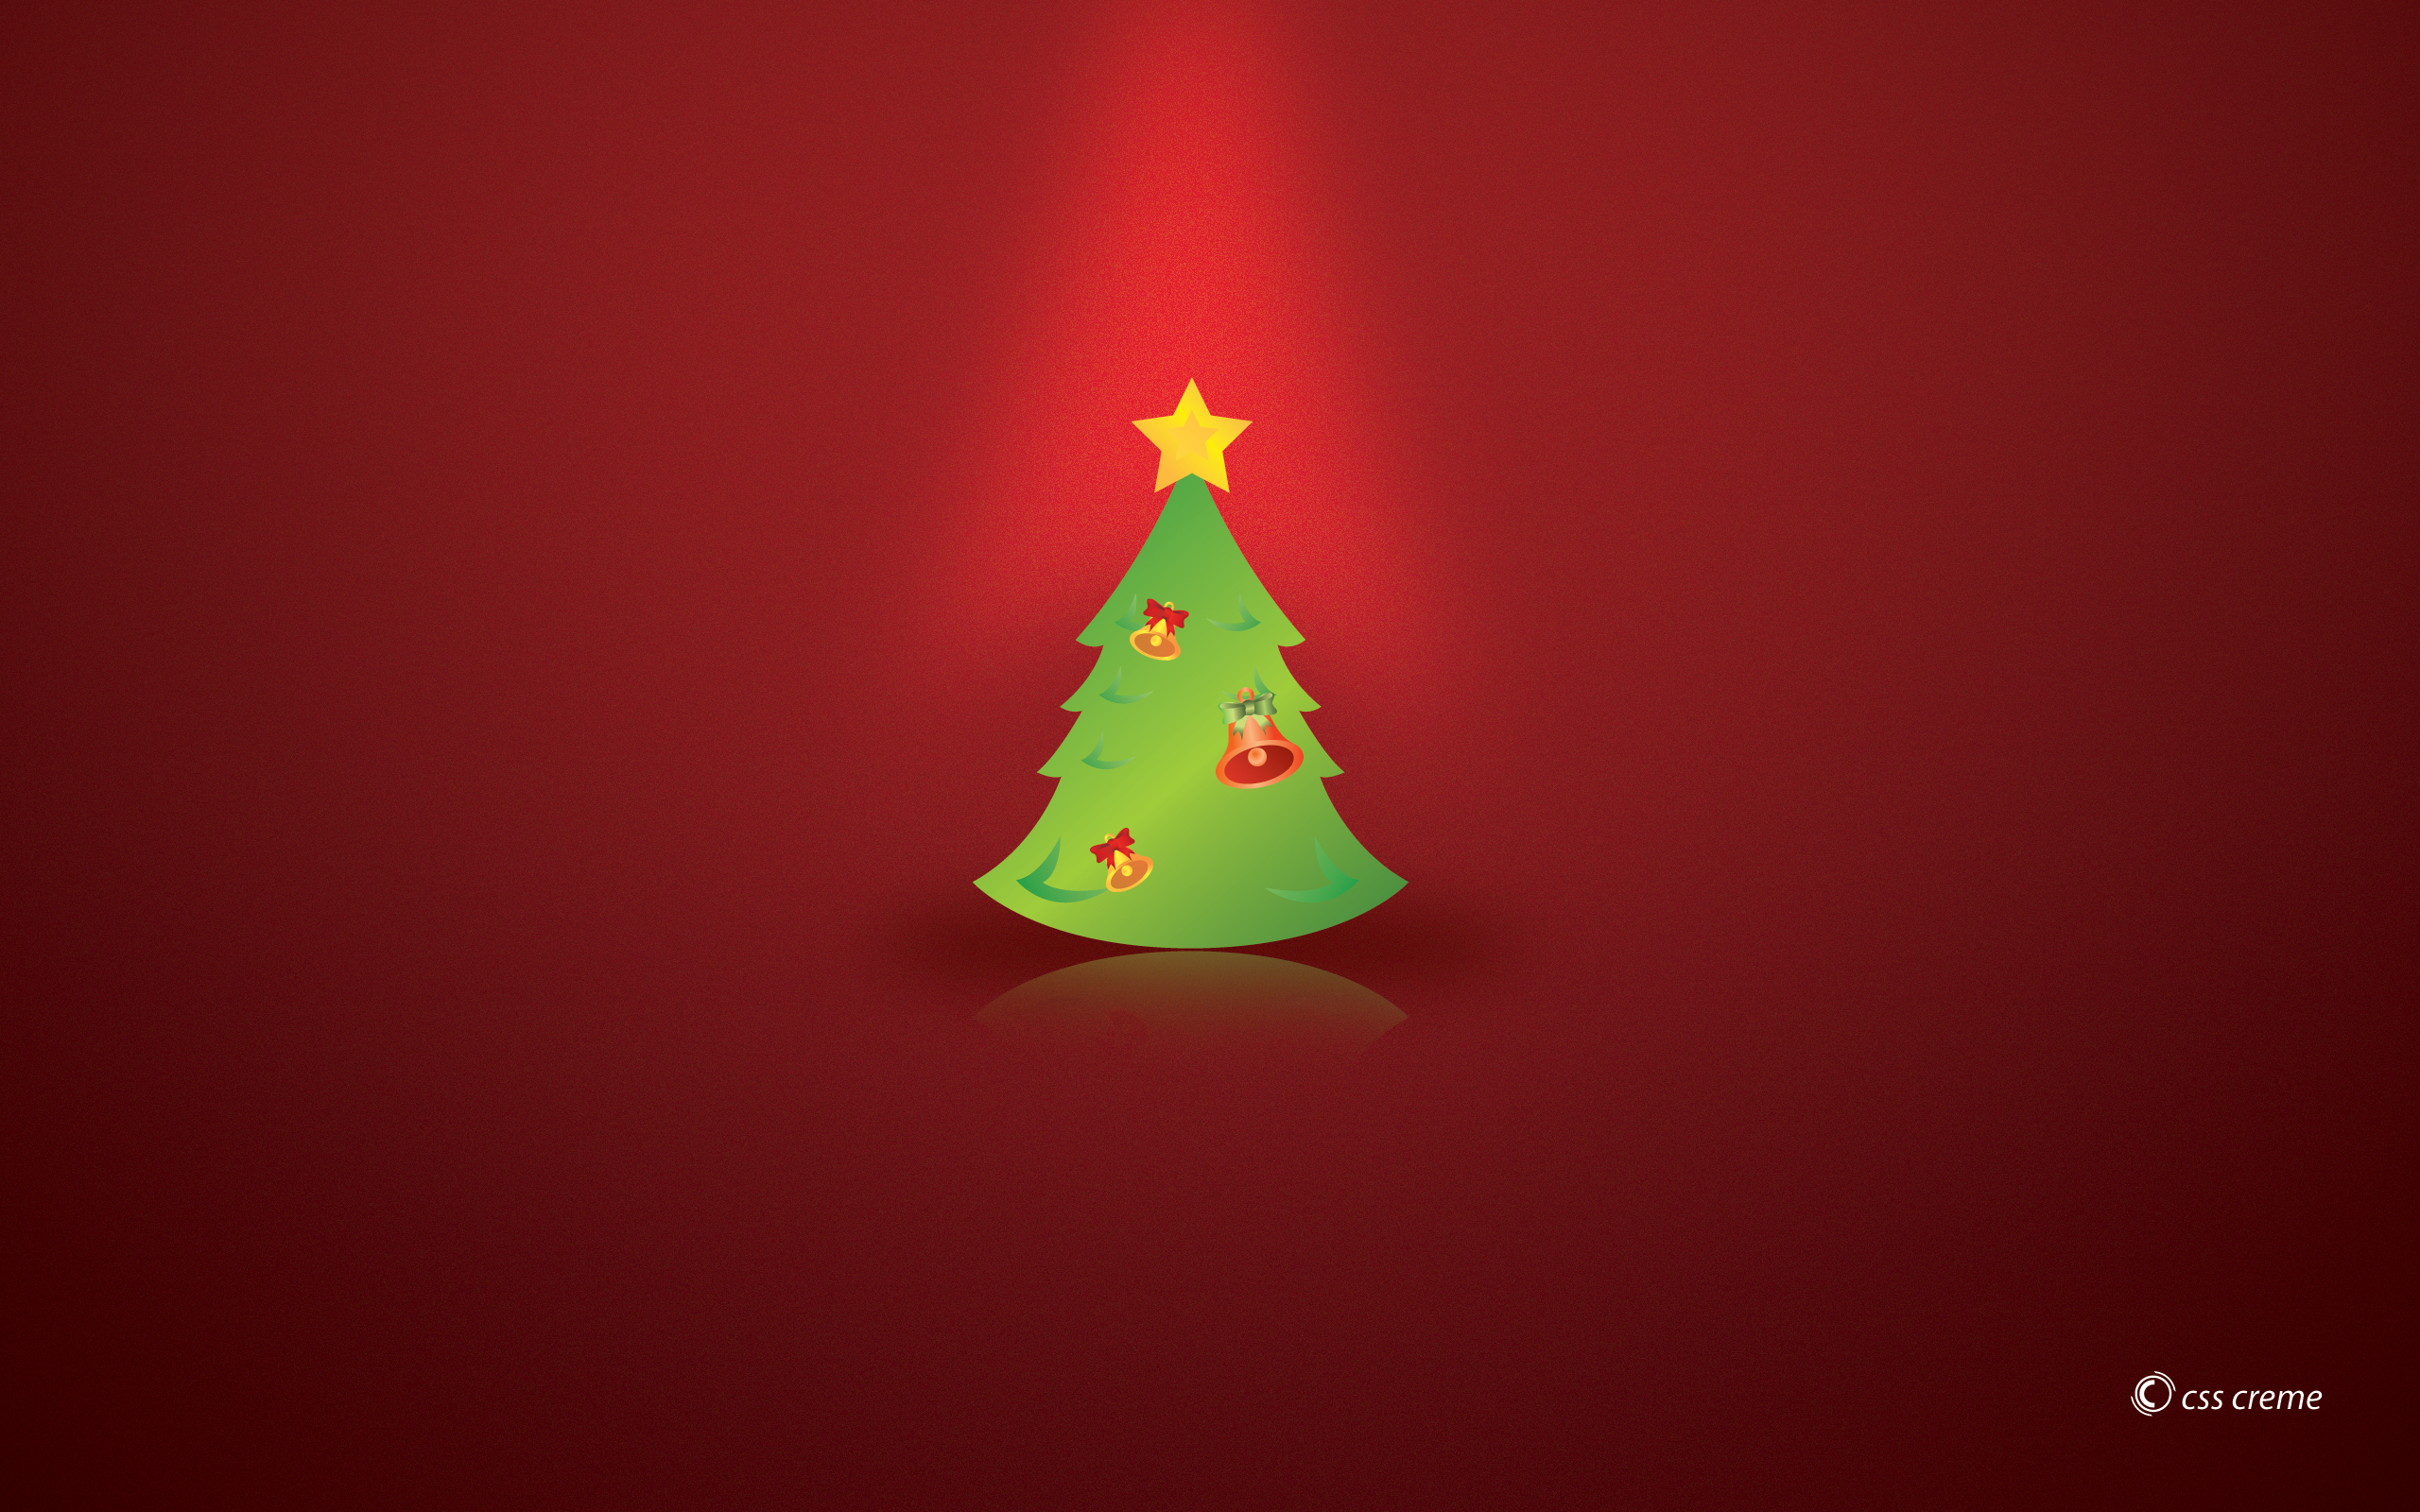 2560x1440 Christmas Tree Youtube Channel Cover